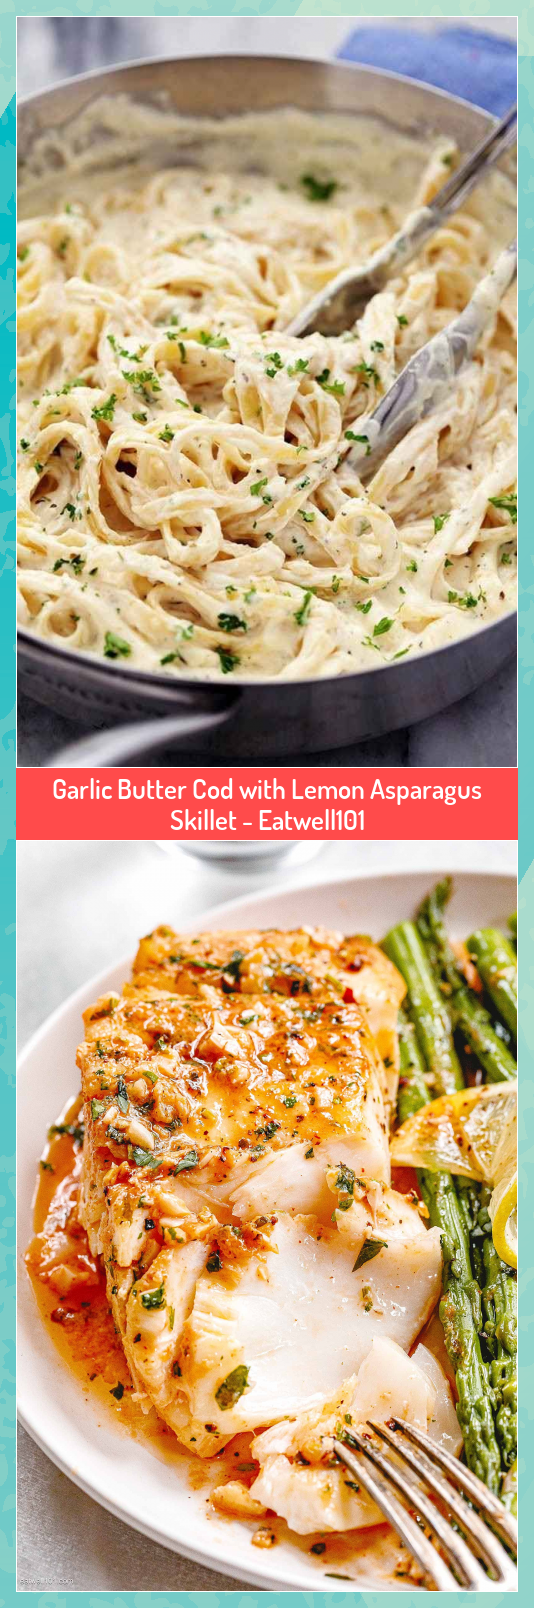 Garlic Butter Cod with Lemon Asparagus Skillet  Eatwell101